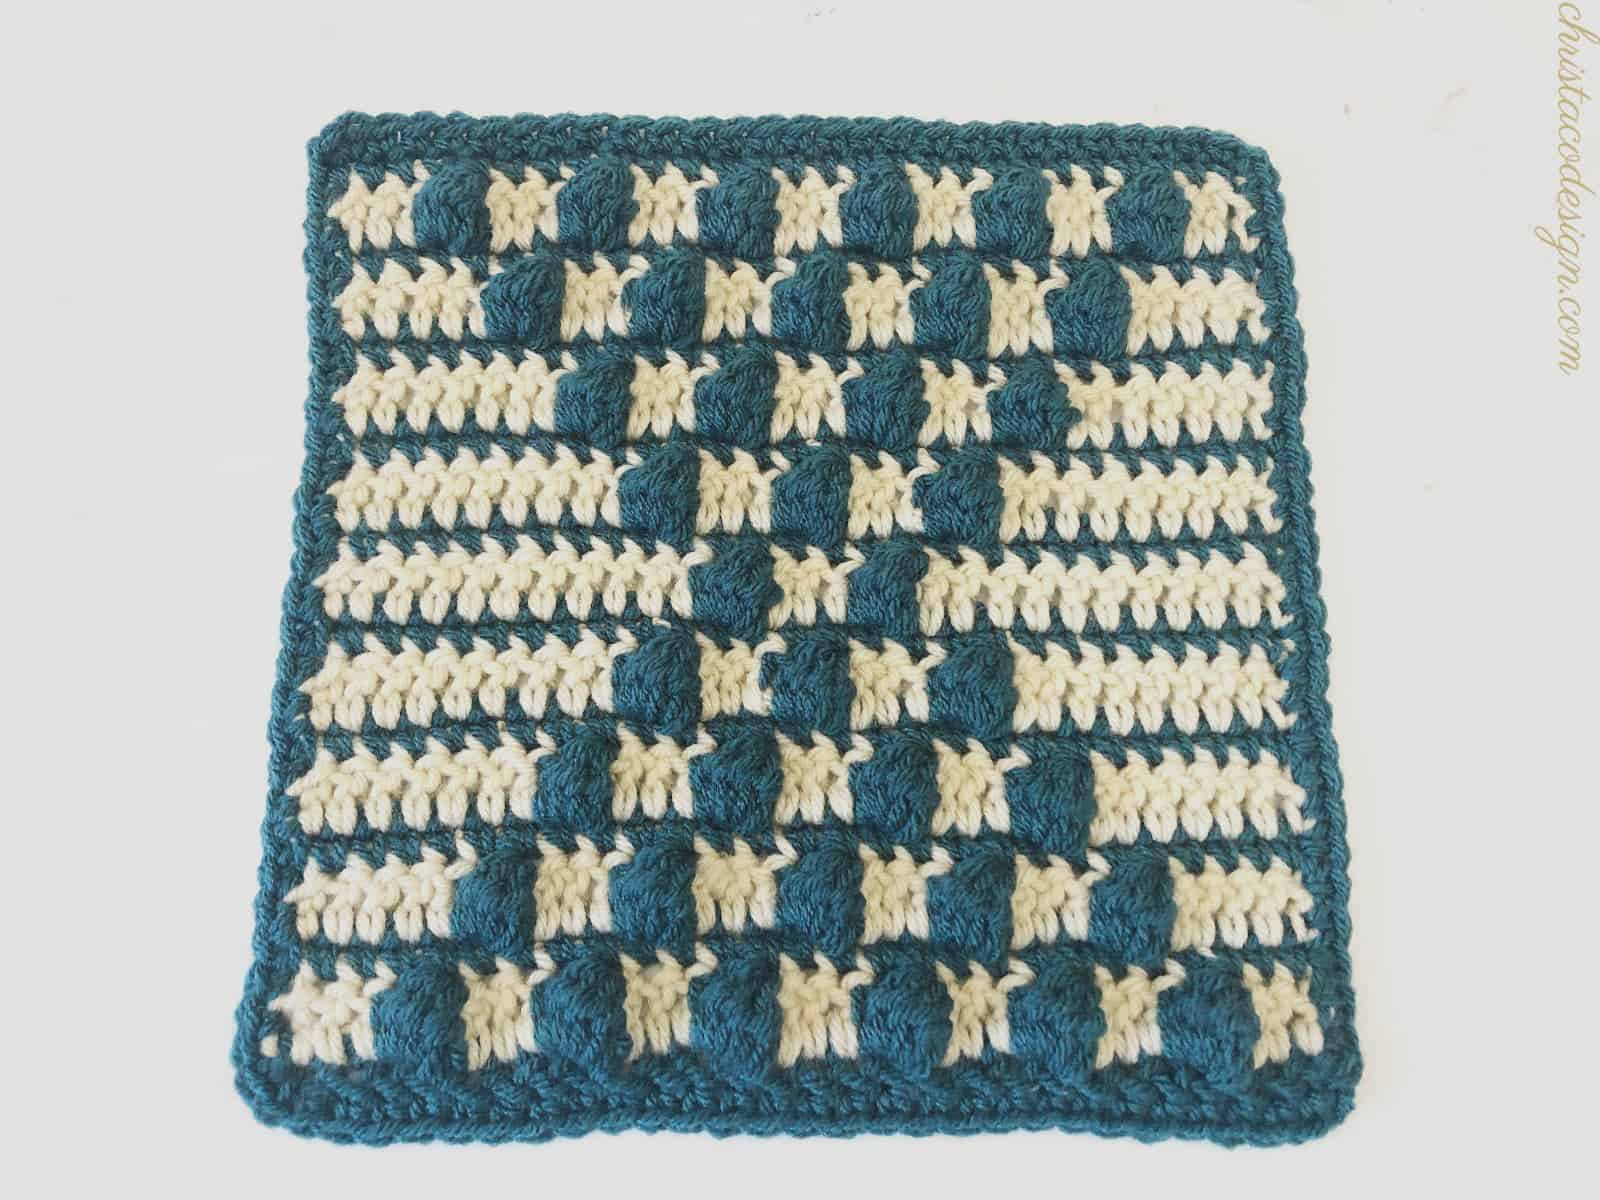 Finished square with blue single crochet border.